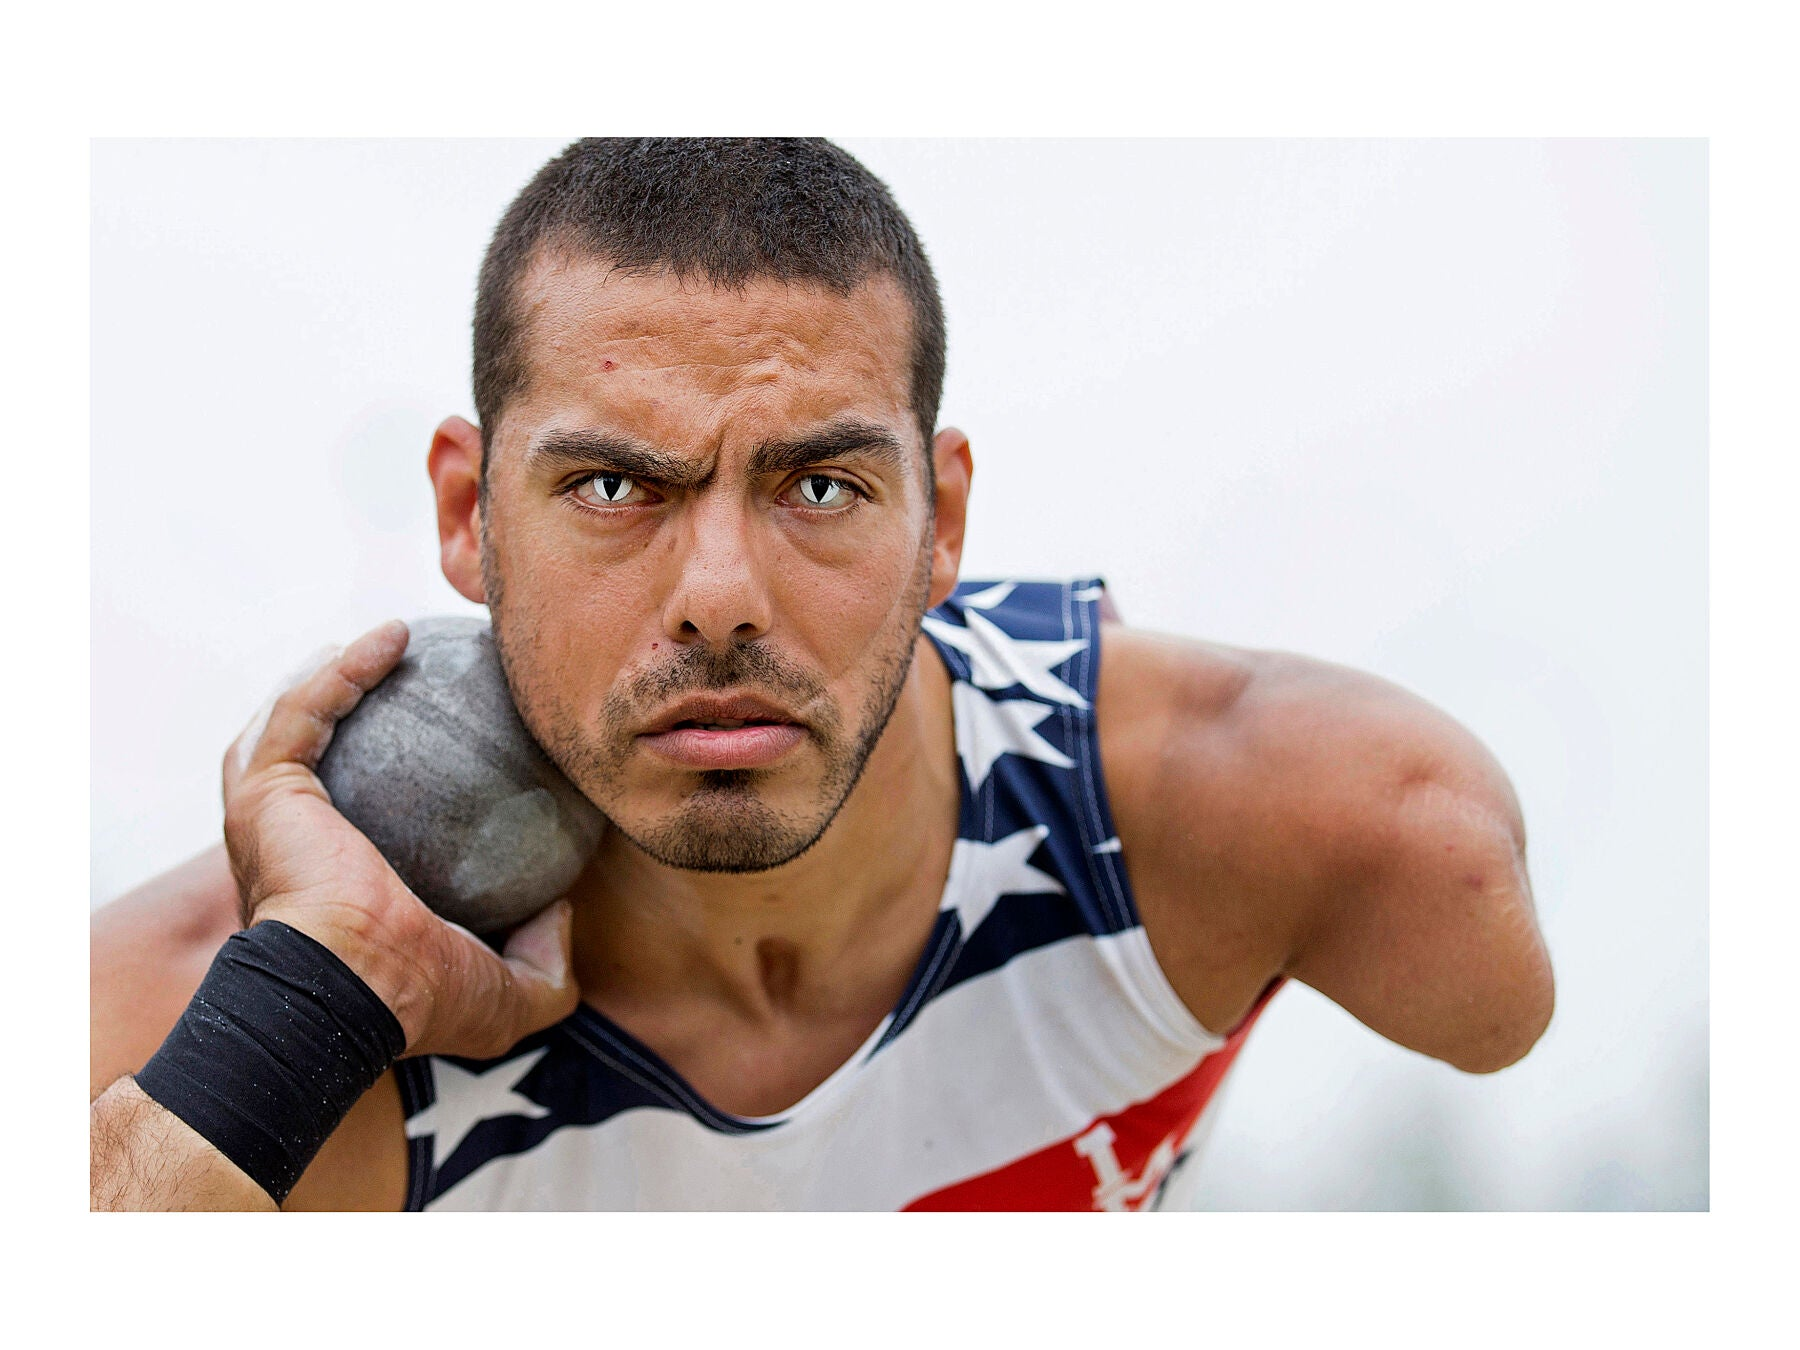 Michael Kacer, Invictus Games, Lee Valley Athletics Centre – 11 September 2014